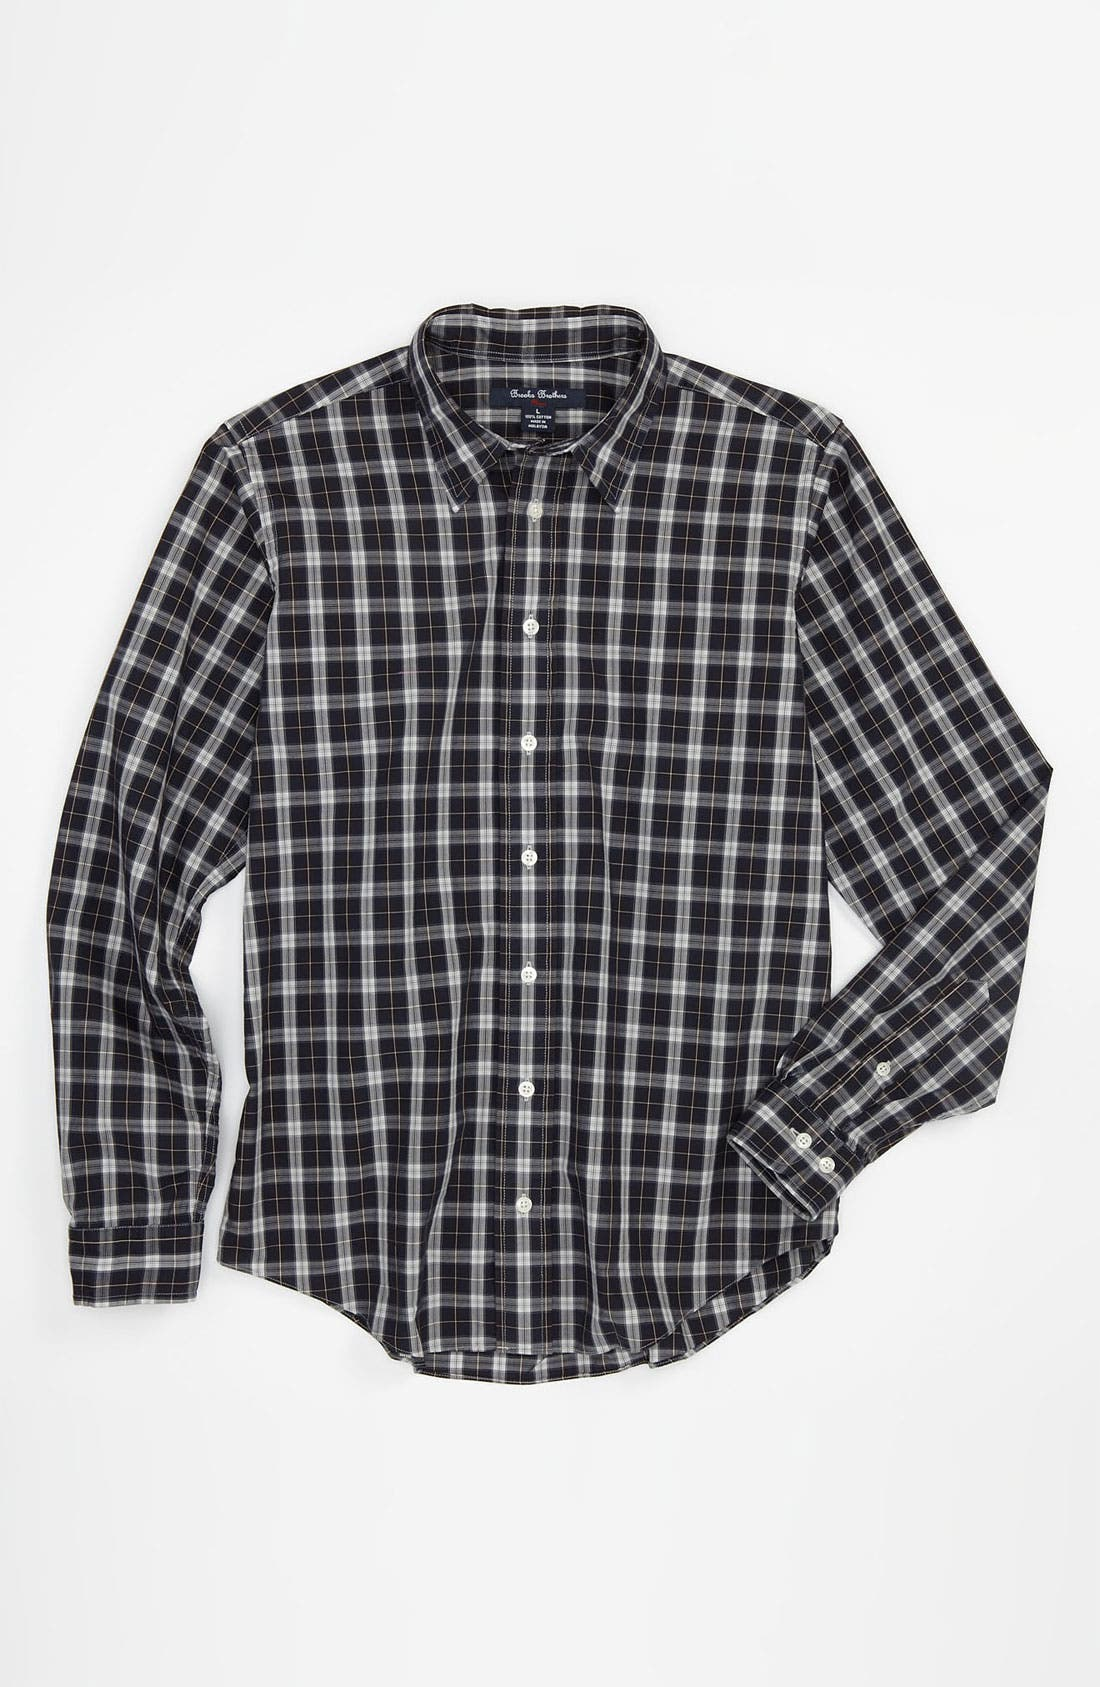 Alternate Image 1 Selected - Brooks Brothers Plaid Sport Shirt (Big Boys)